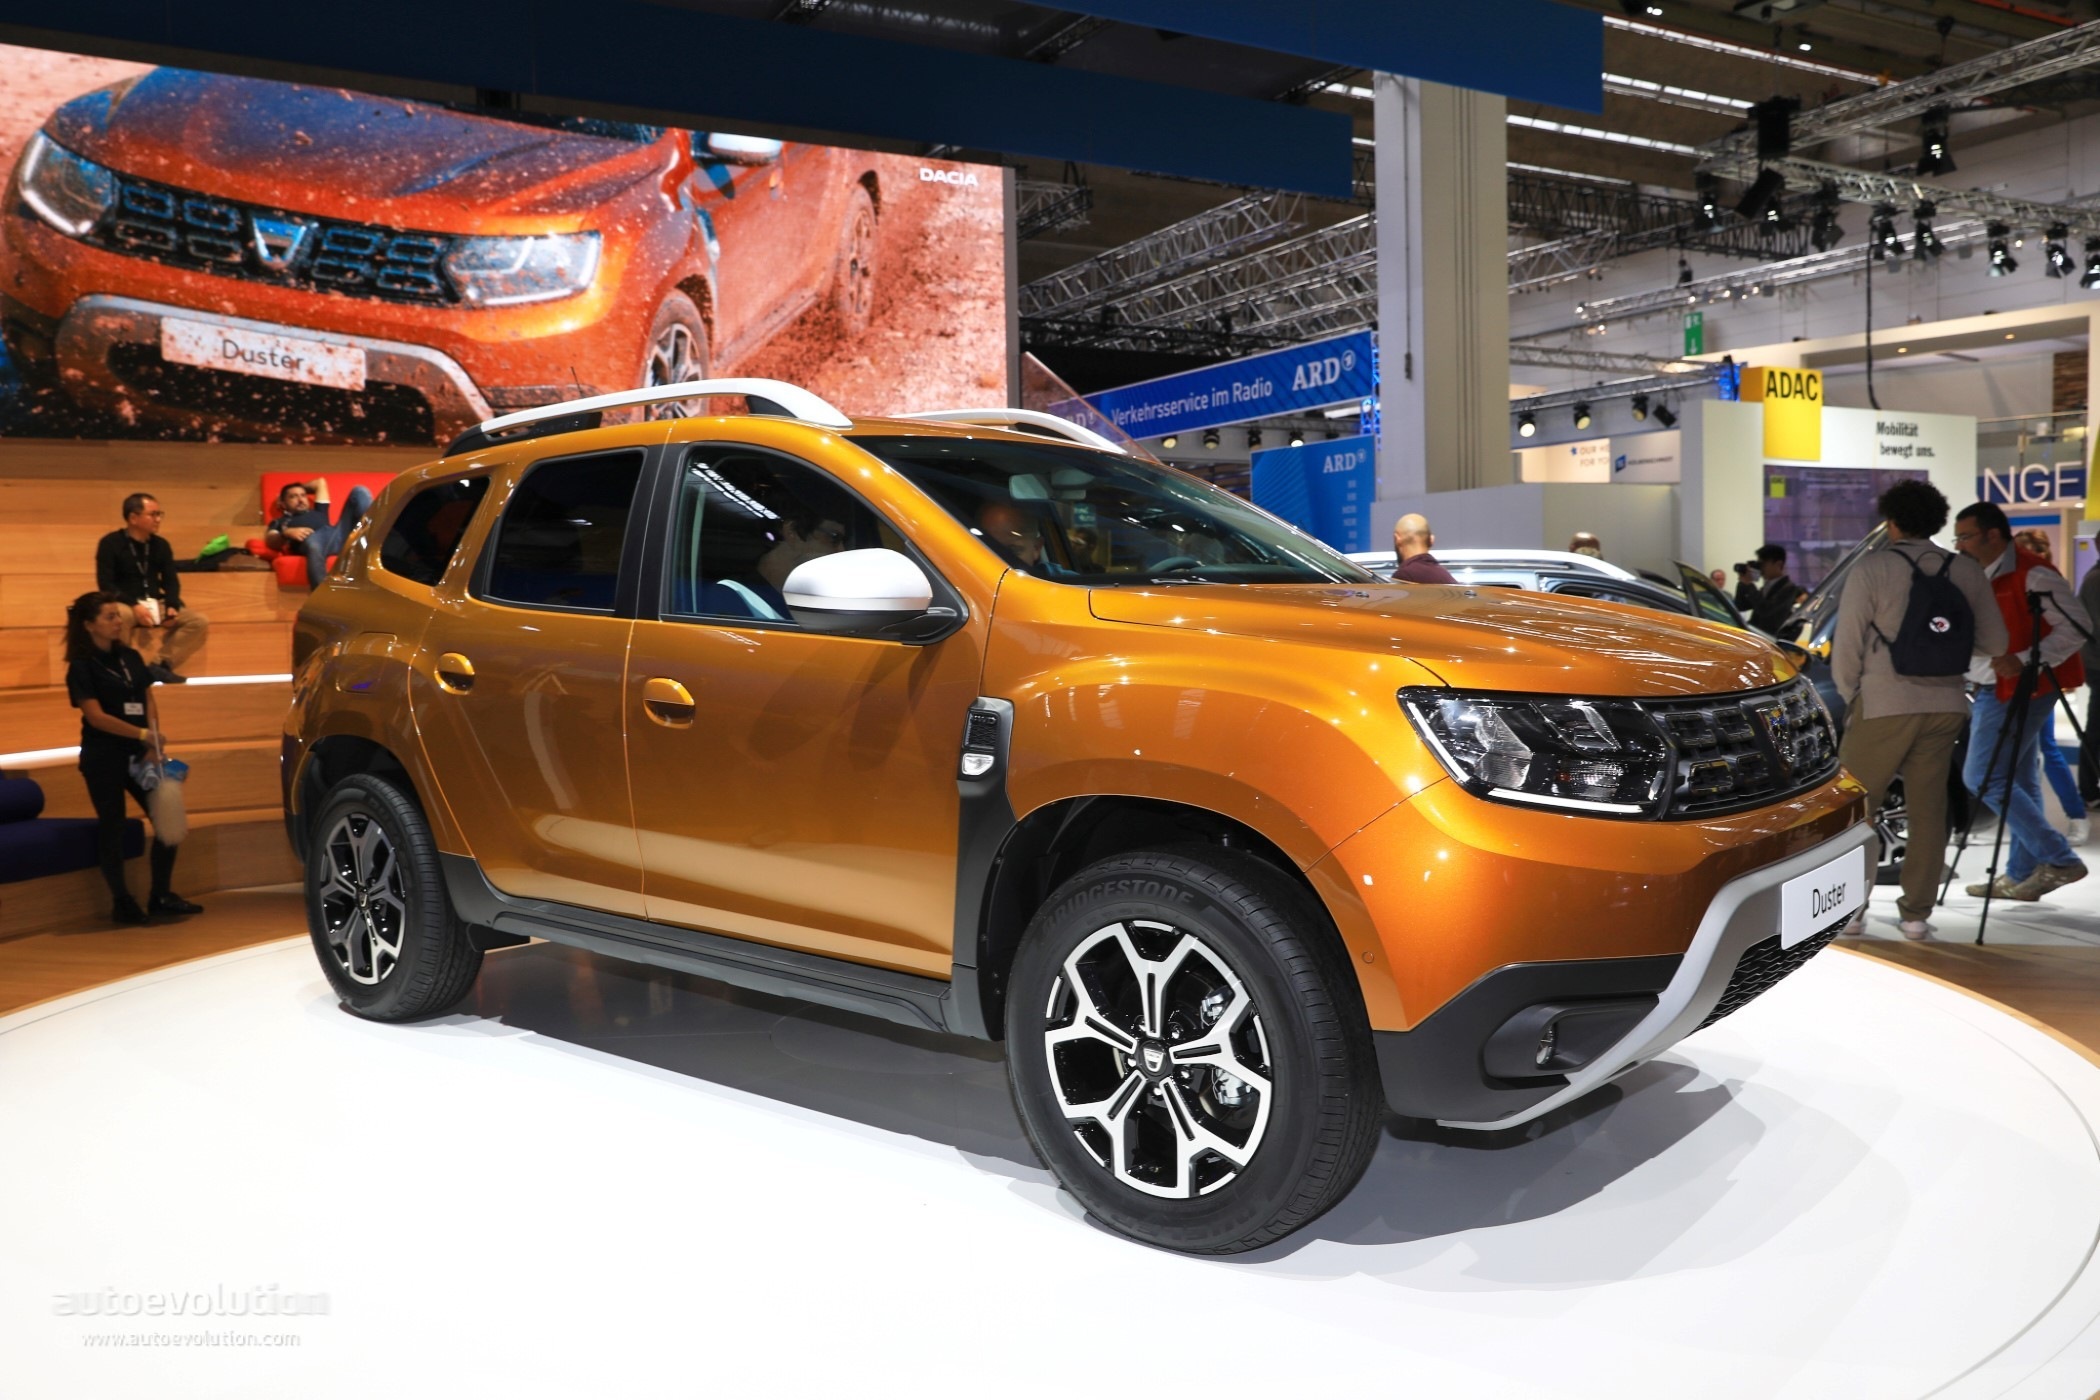 2018 dacia duster 2 is probably the cheapest compact crossover in frankfurt autoevolution. Black Bedroom Furniture Sets. Home Design Ideas